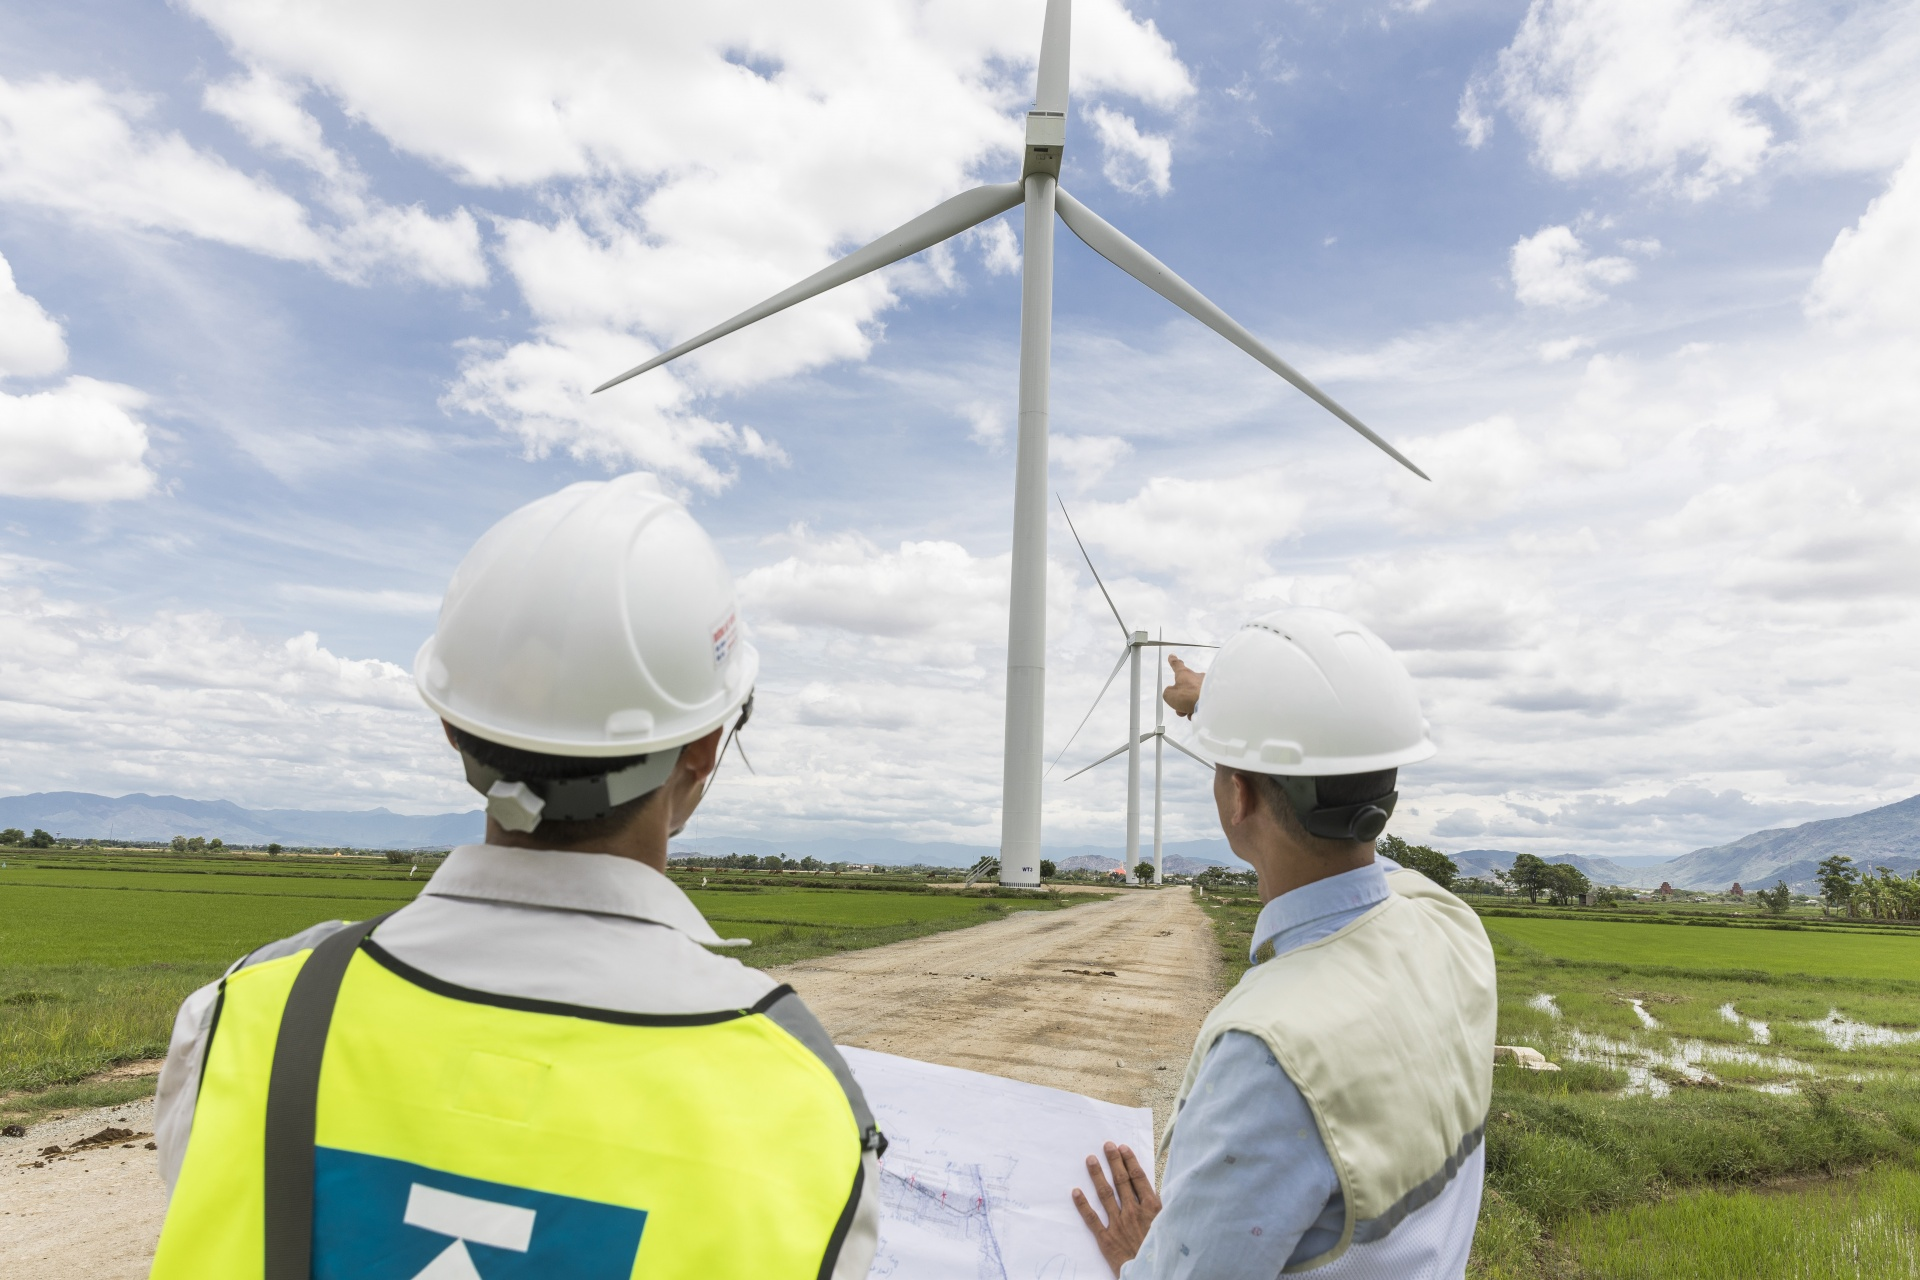 $6.7 billion in wind power investment in Vietnam at risk without COVID-19 relief